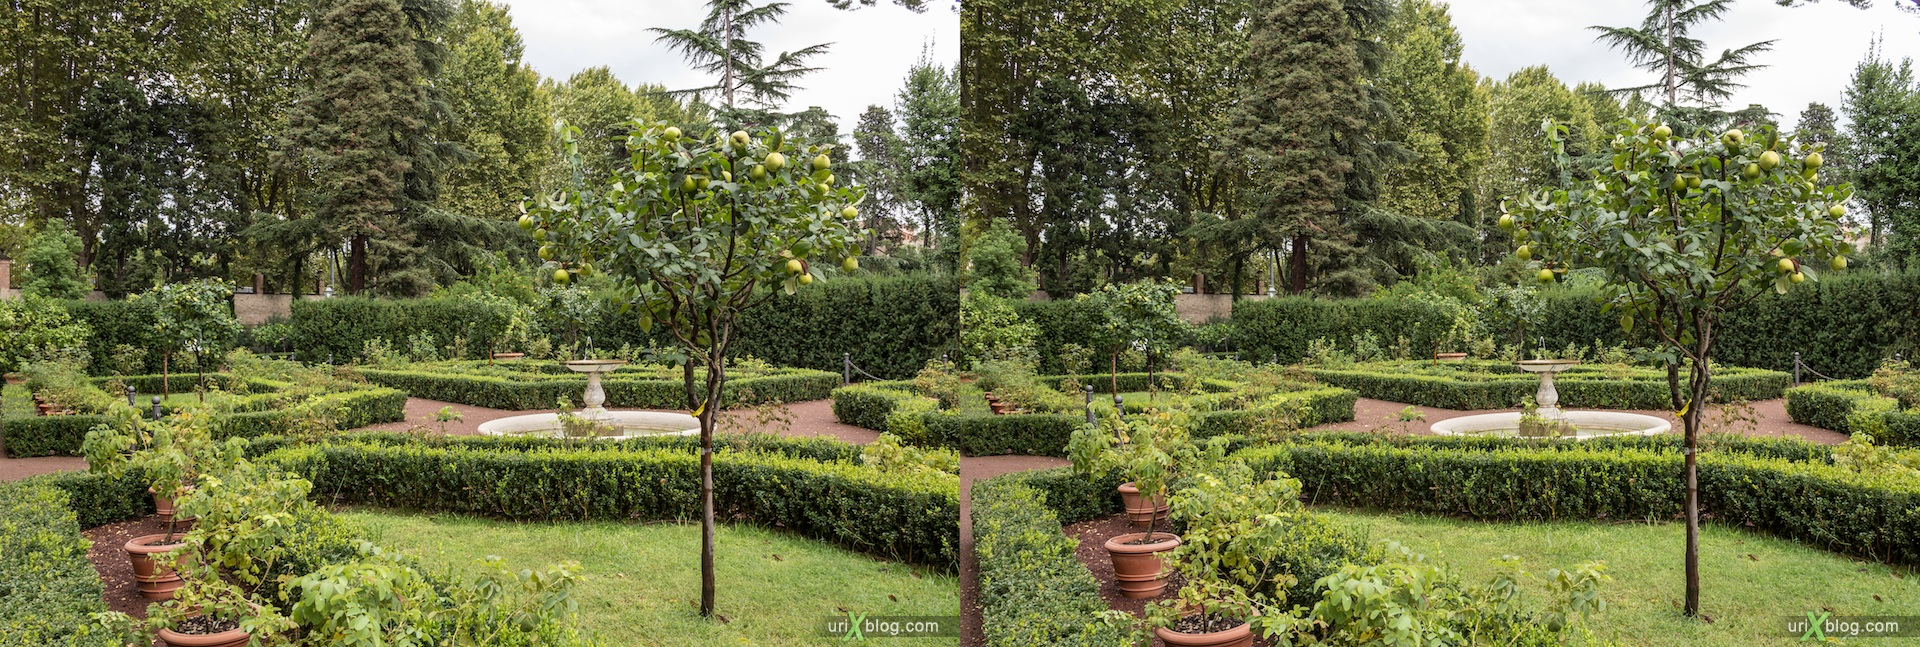 2012, Villa Farnesina, fountain, lemons, Rome, Italy, Europe, 3D, stereo pair, cross-eyed, crossview, cross view stereo pair